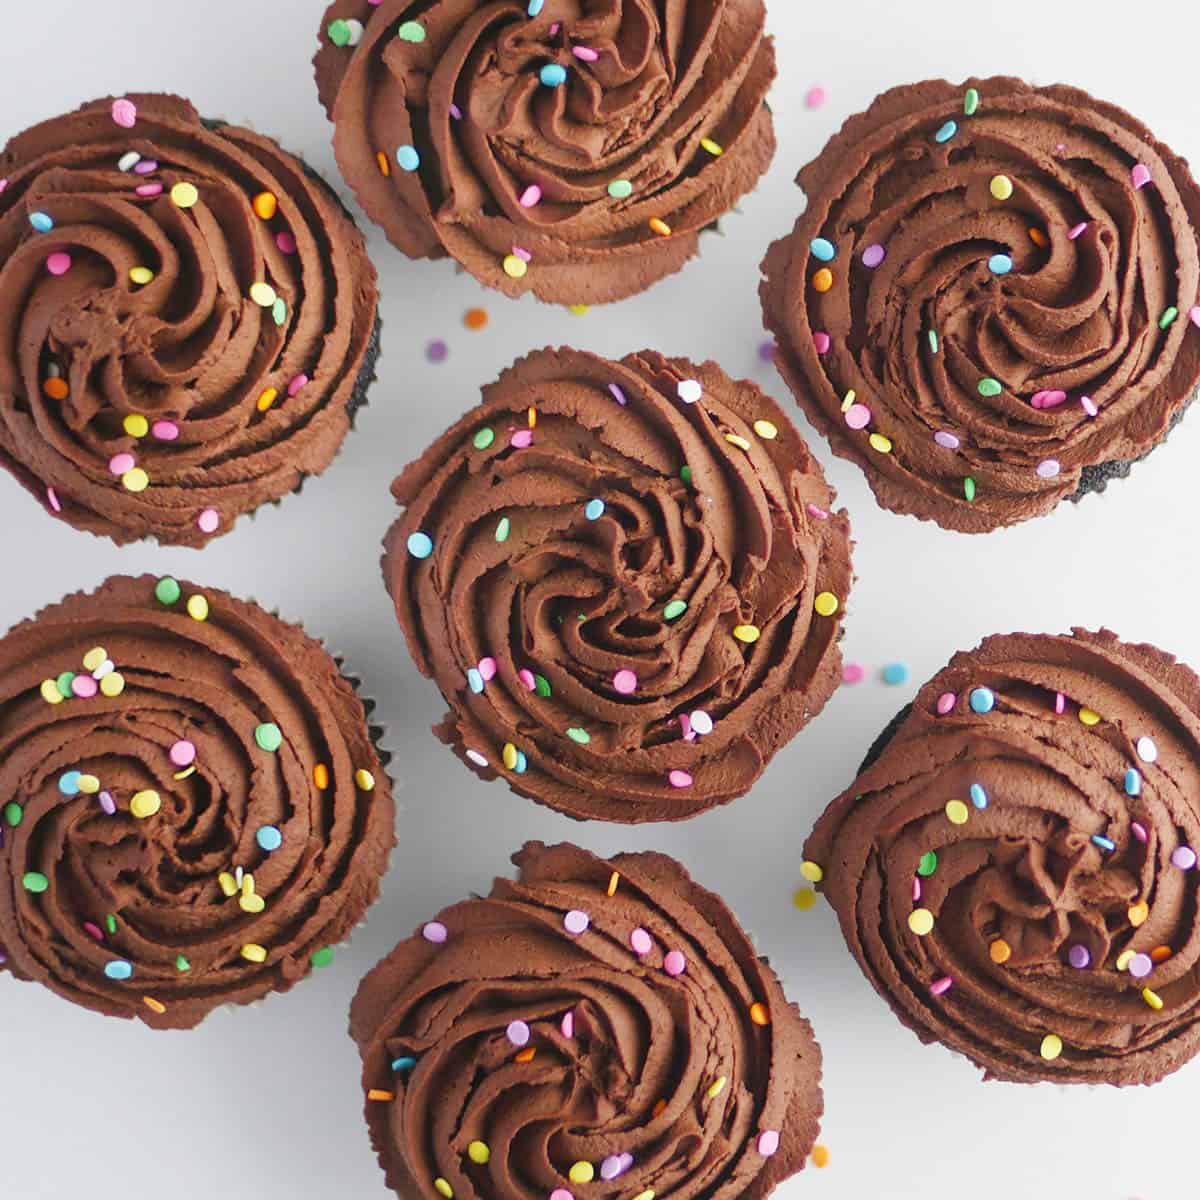 Cupcakes topped with chocolate whipped cream piped into swirls viewed from top down.